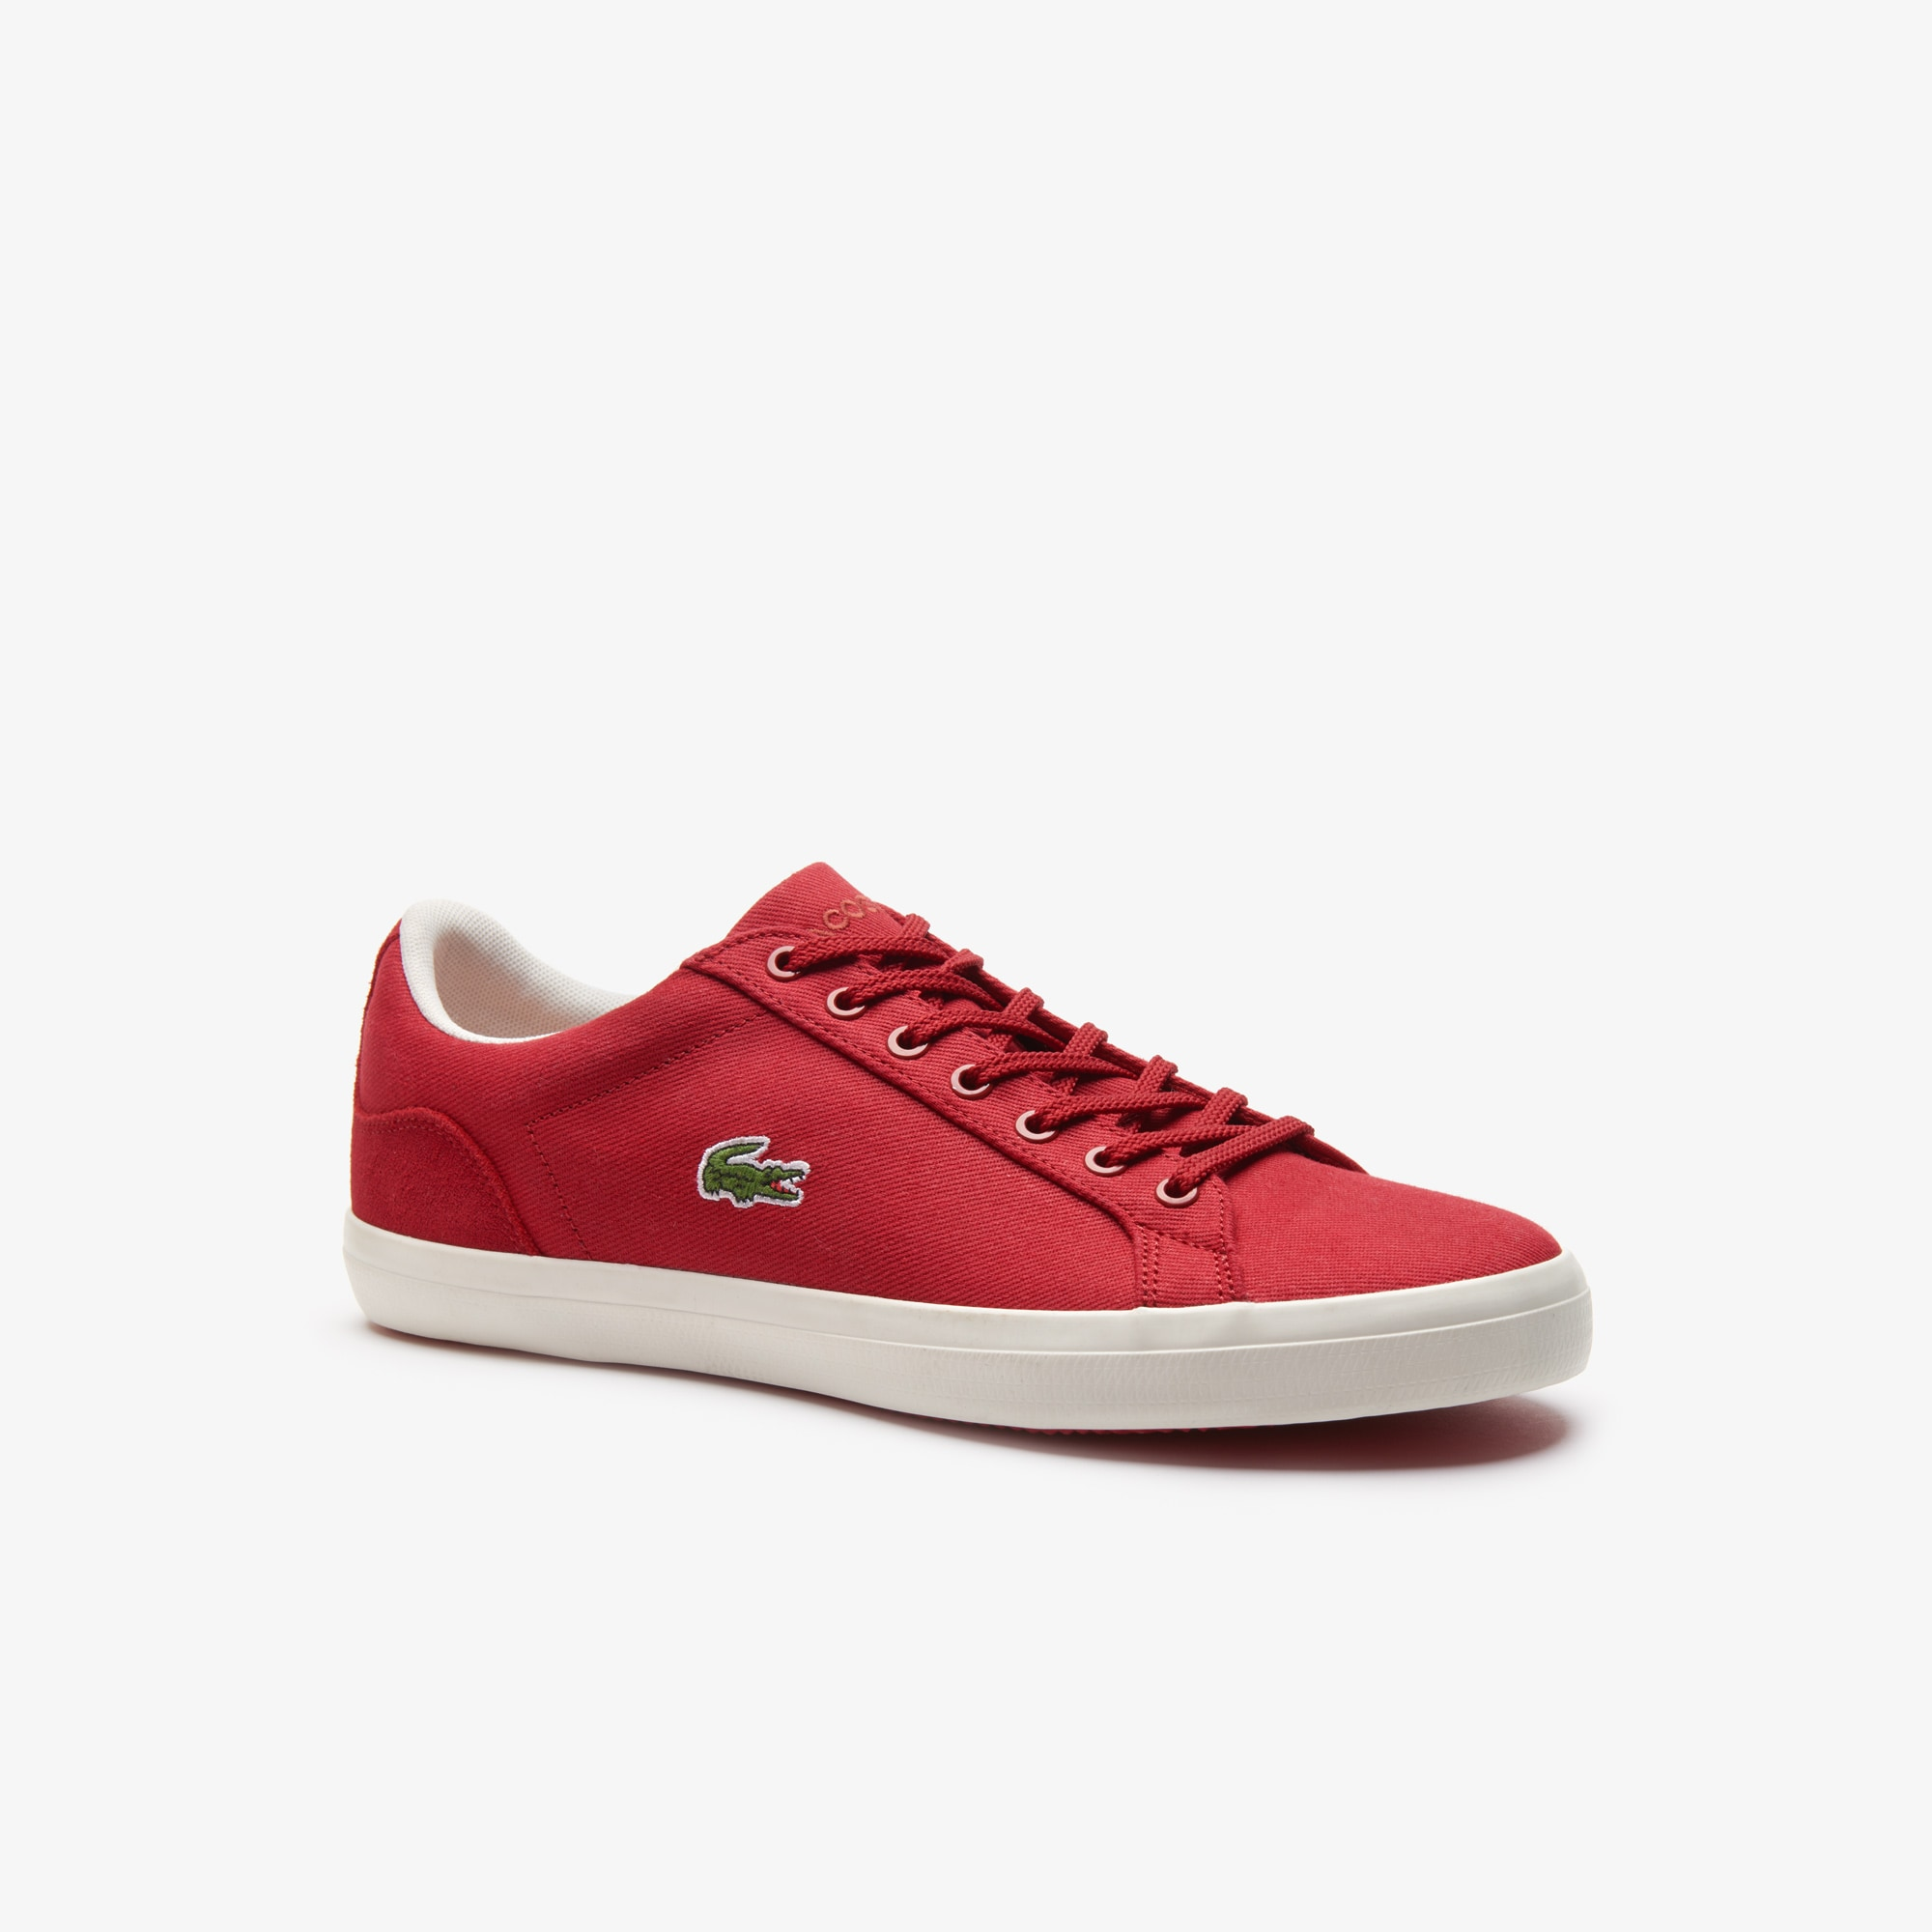 dd33f5b7148b Lacoste shoes for men  Sneakers